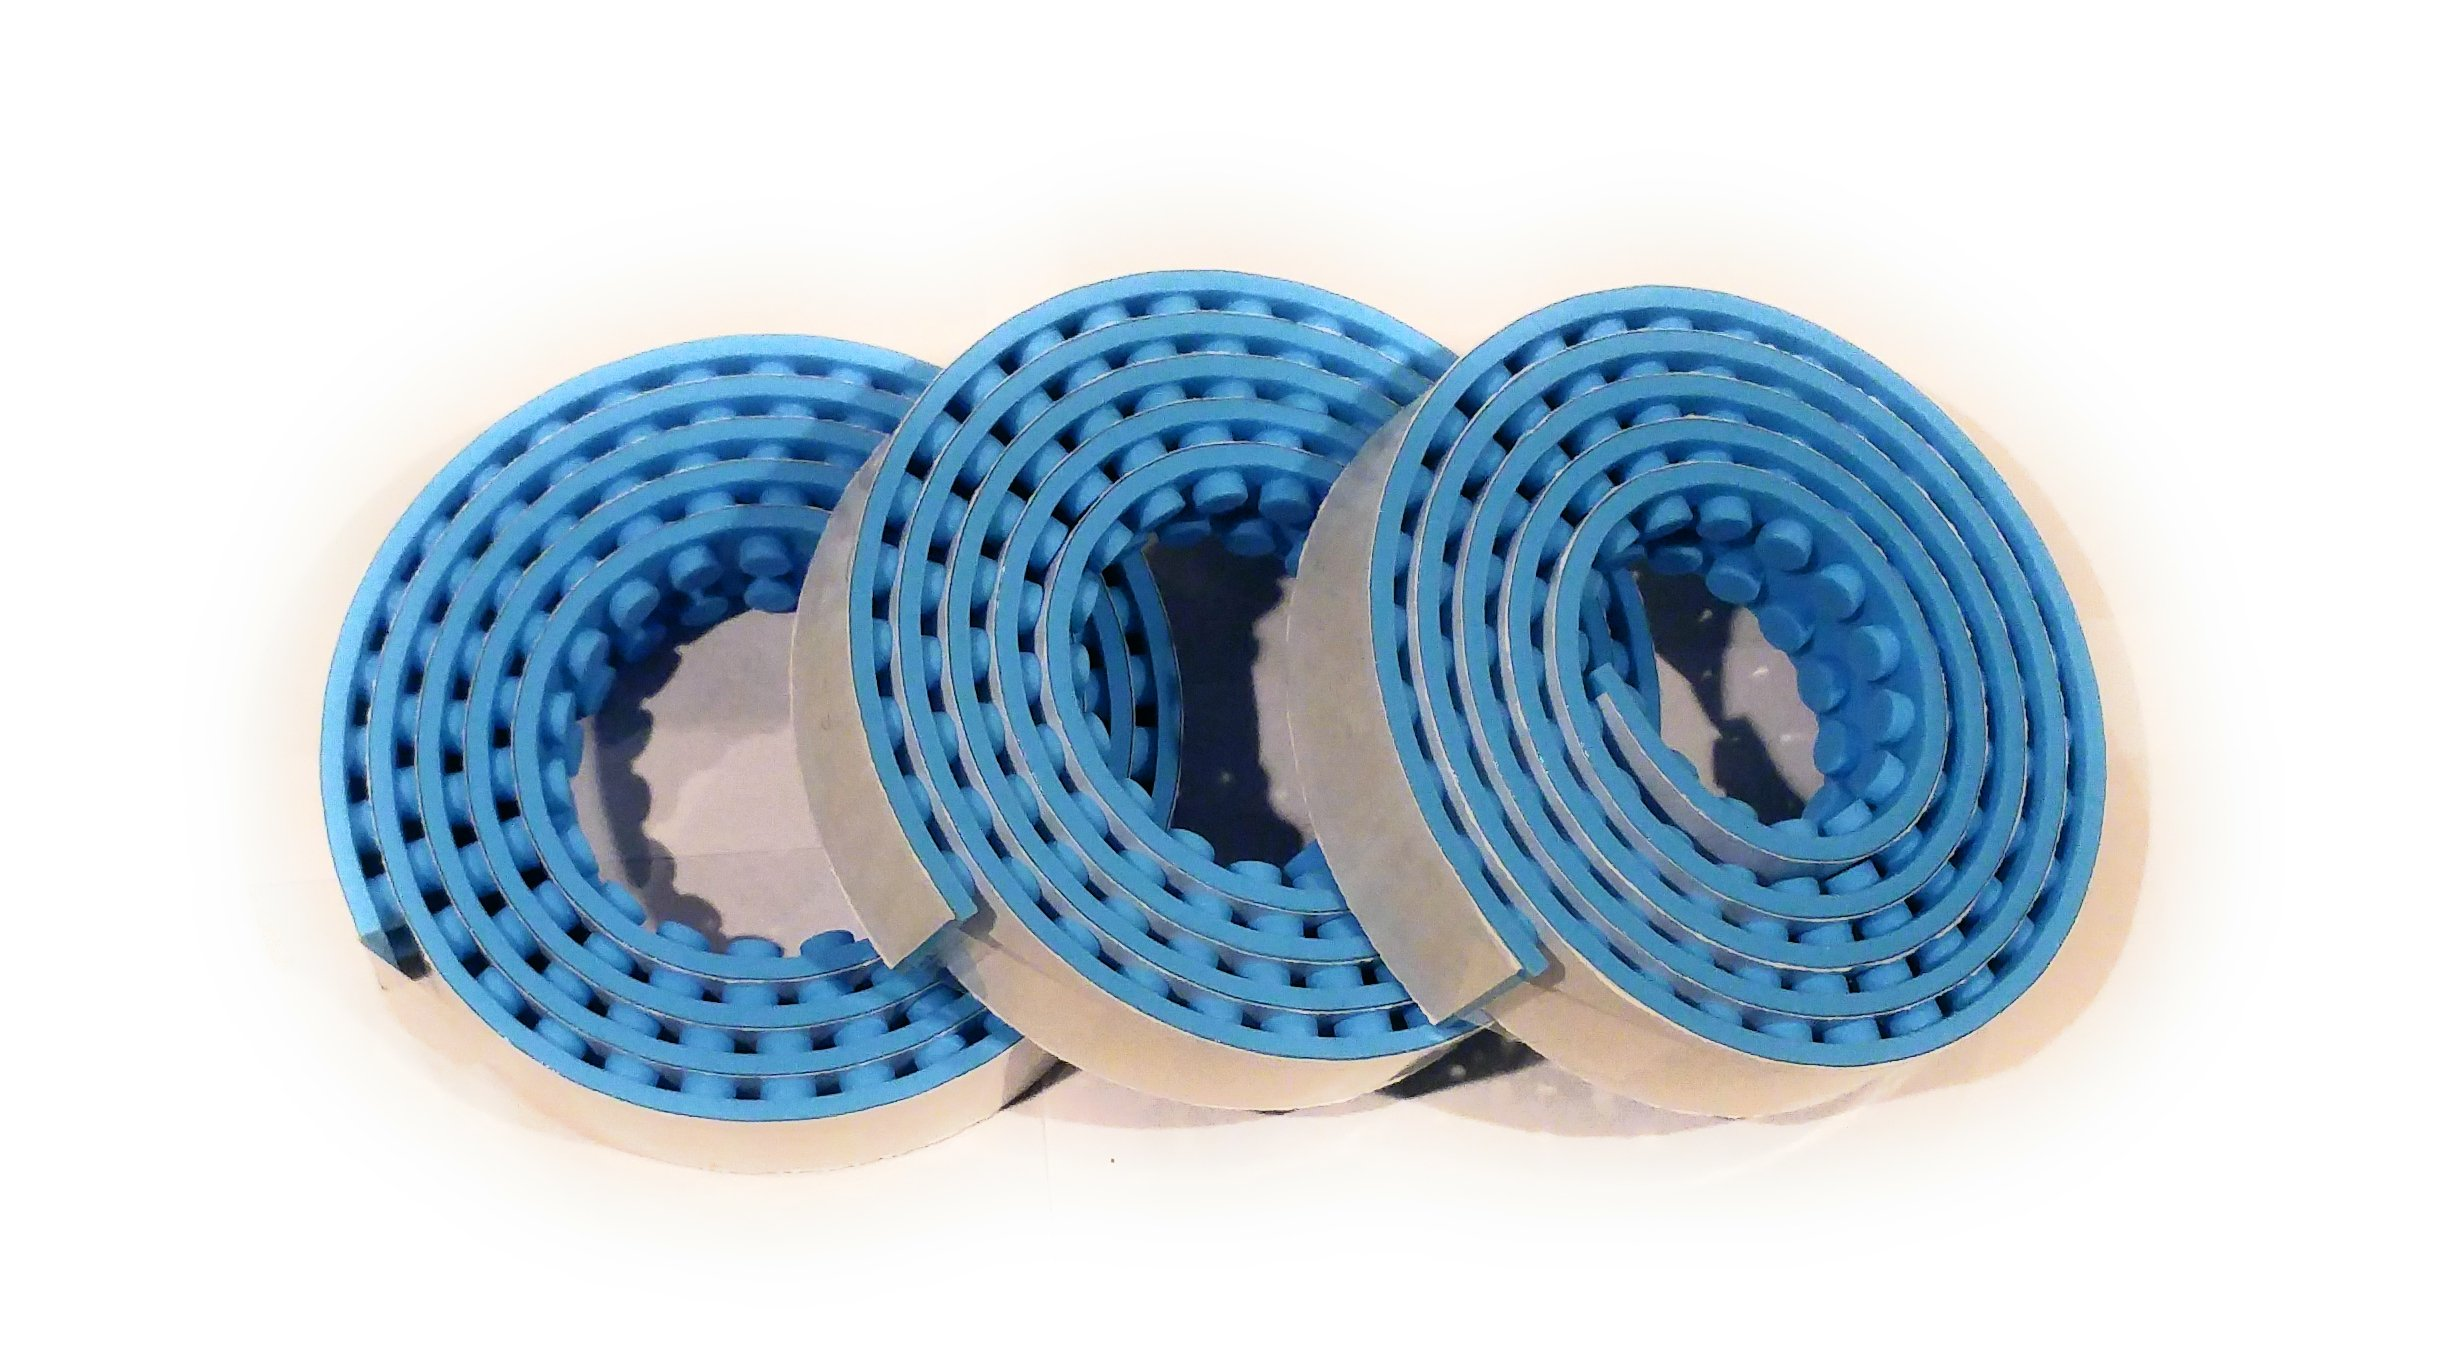 Stuff N Junk 2 Stick and Build (3 Pk) Silicone Building Block Tape Rolls, Compatible w/ ALL Lego Blocks (Mini Figures, Duplo) Mega Bloks! Perfect for All Ages Total 9ft of Fun (3ft per roll) (blue)